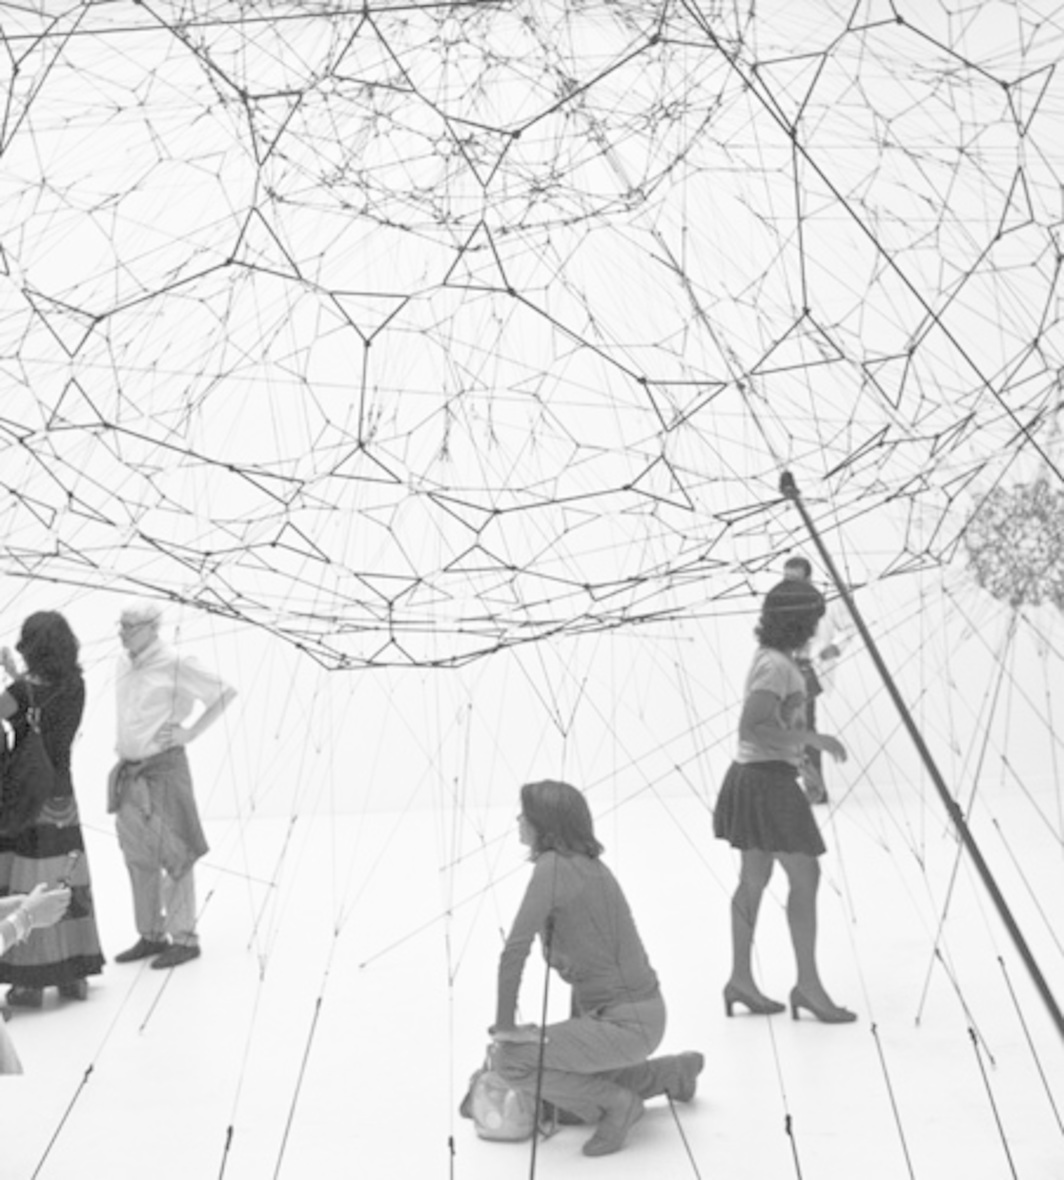 Tomás Saraceno, Galaxies Forming Along Filaments, like Droplets Along the Strands of a Spider's Web, 2009. Installation view, Venice Biennale, 2009.